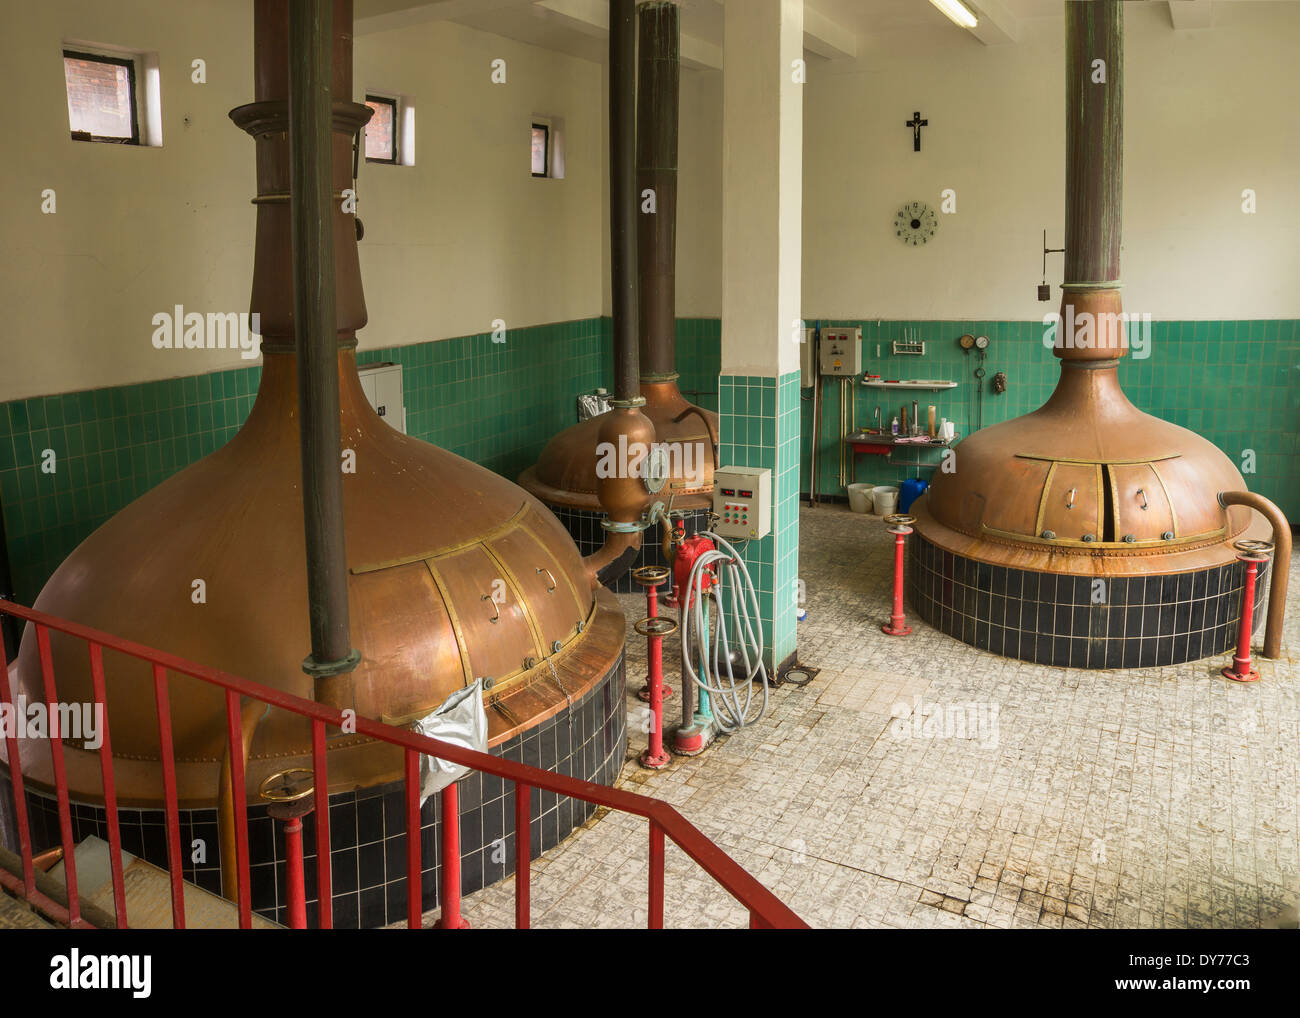 Lower level of brew house at Brewery 'Het Sas' in Boezinge, Belgium. - Stock Image